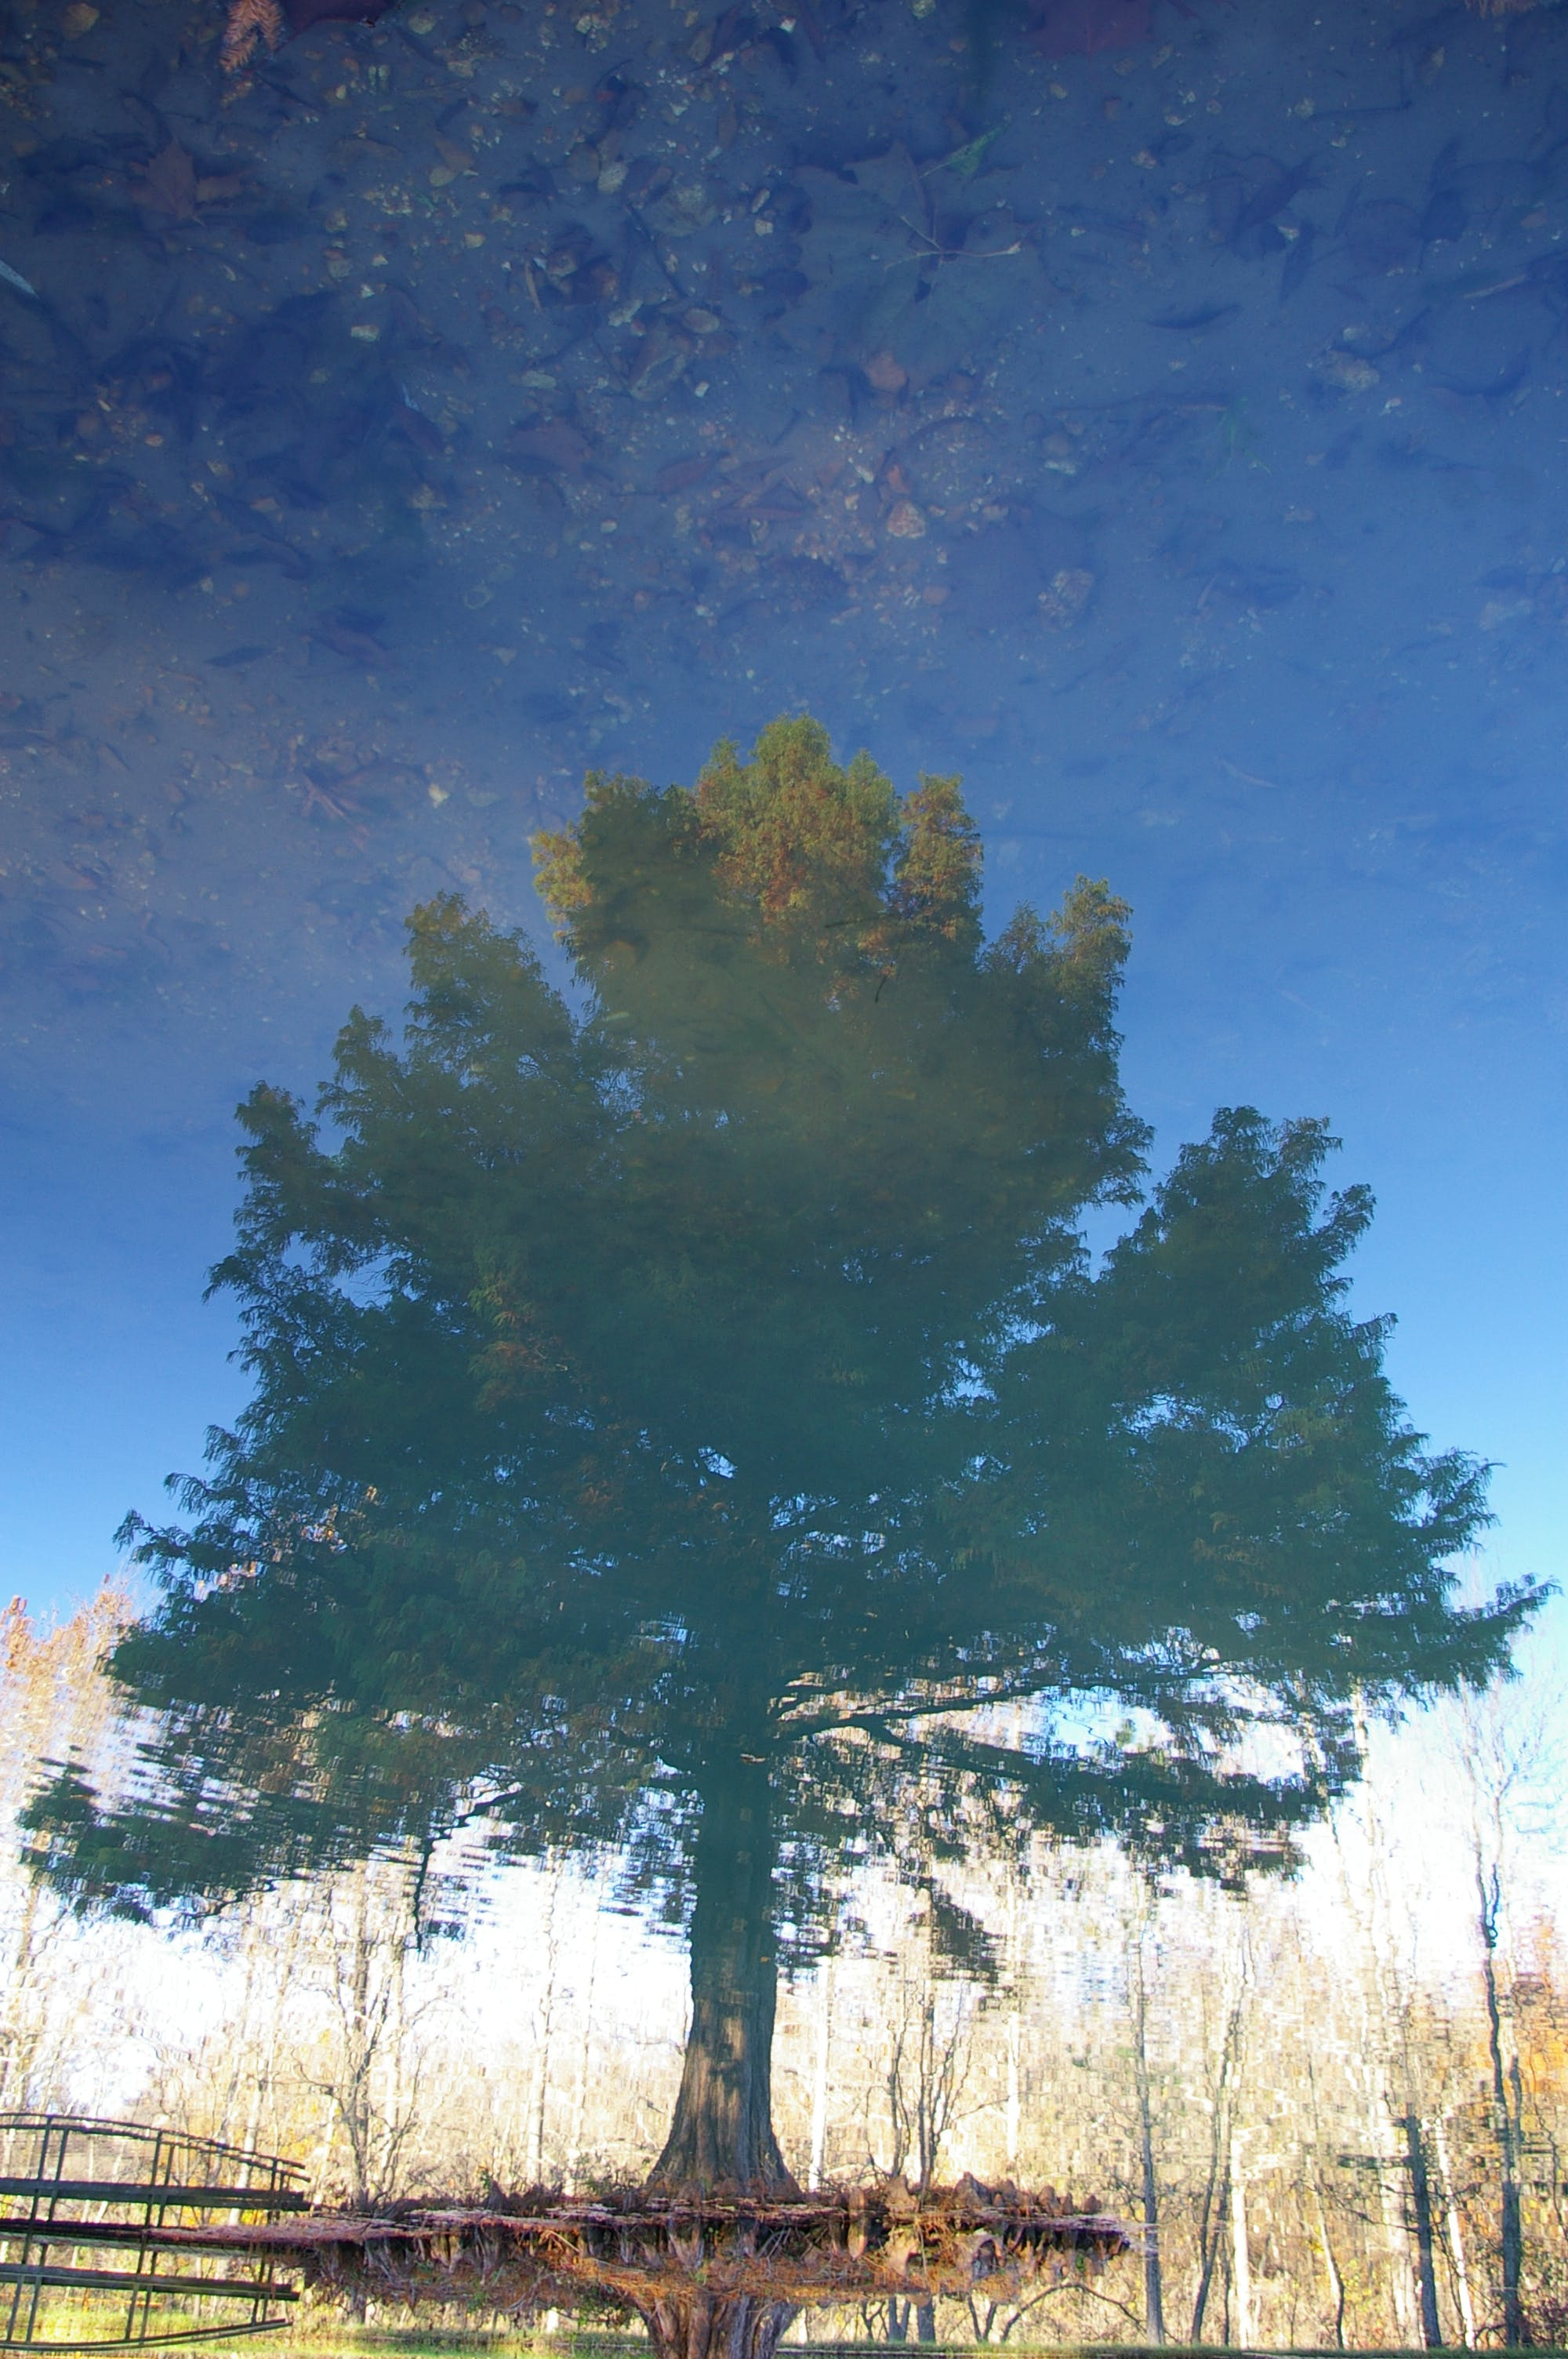 Free stock photo of alternate reality, pond, reflection, tree